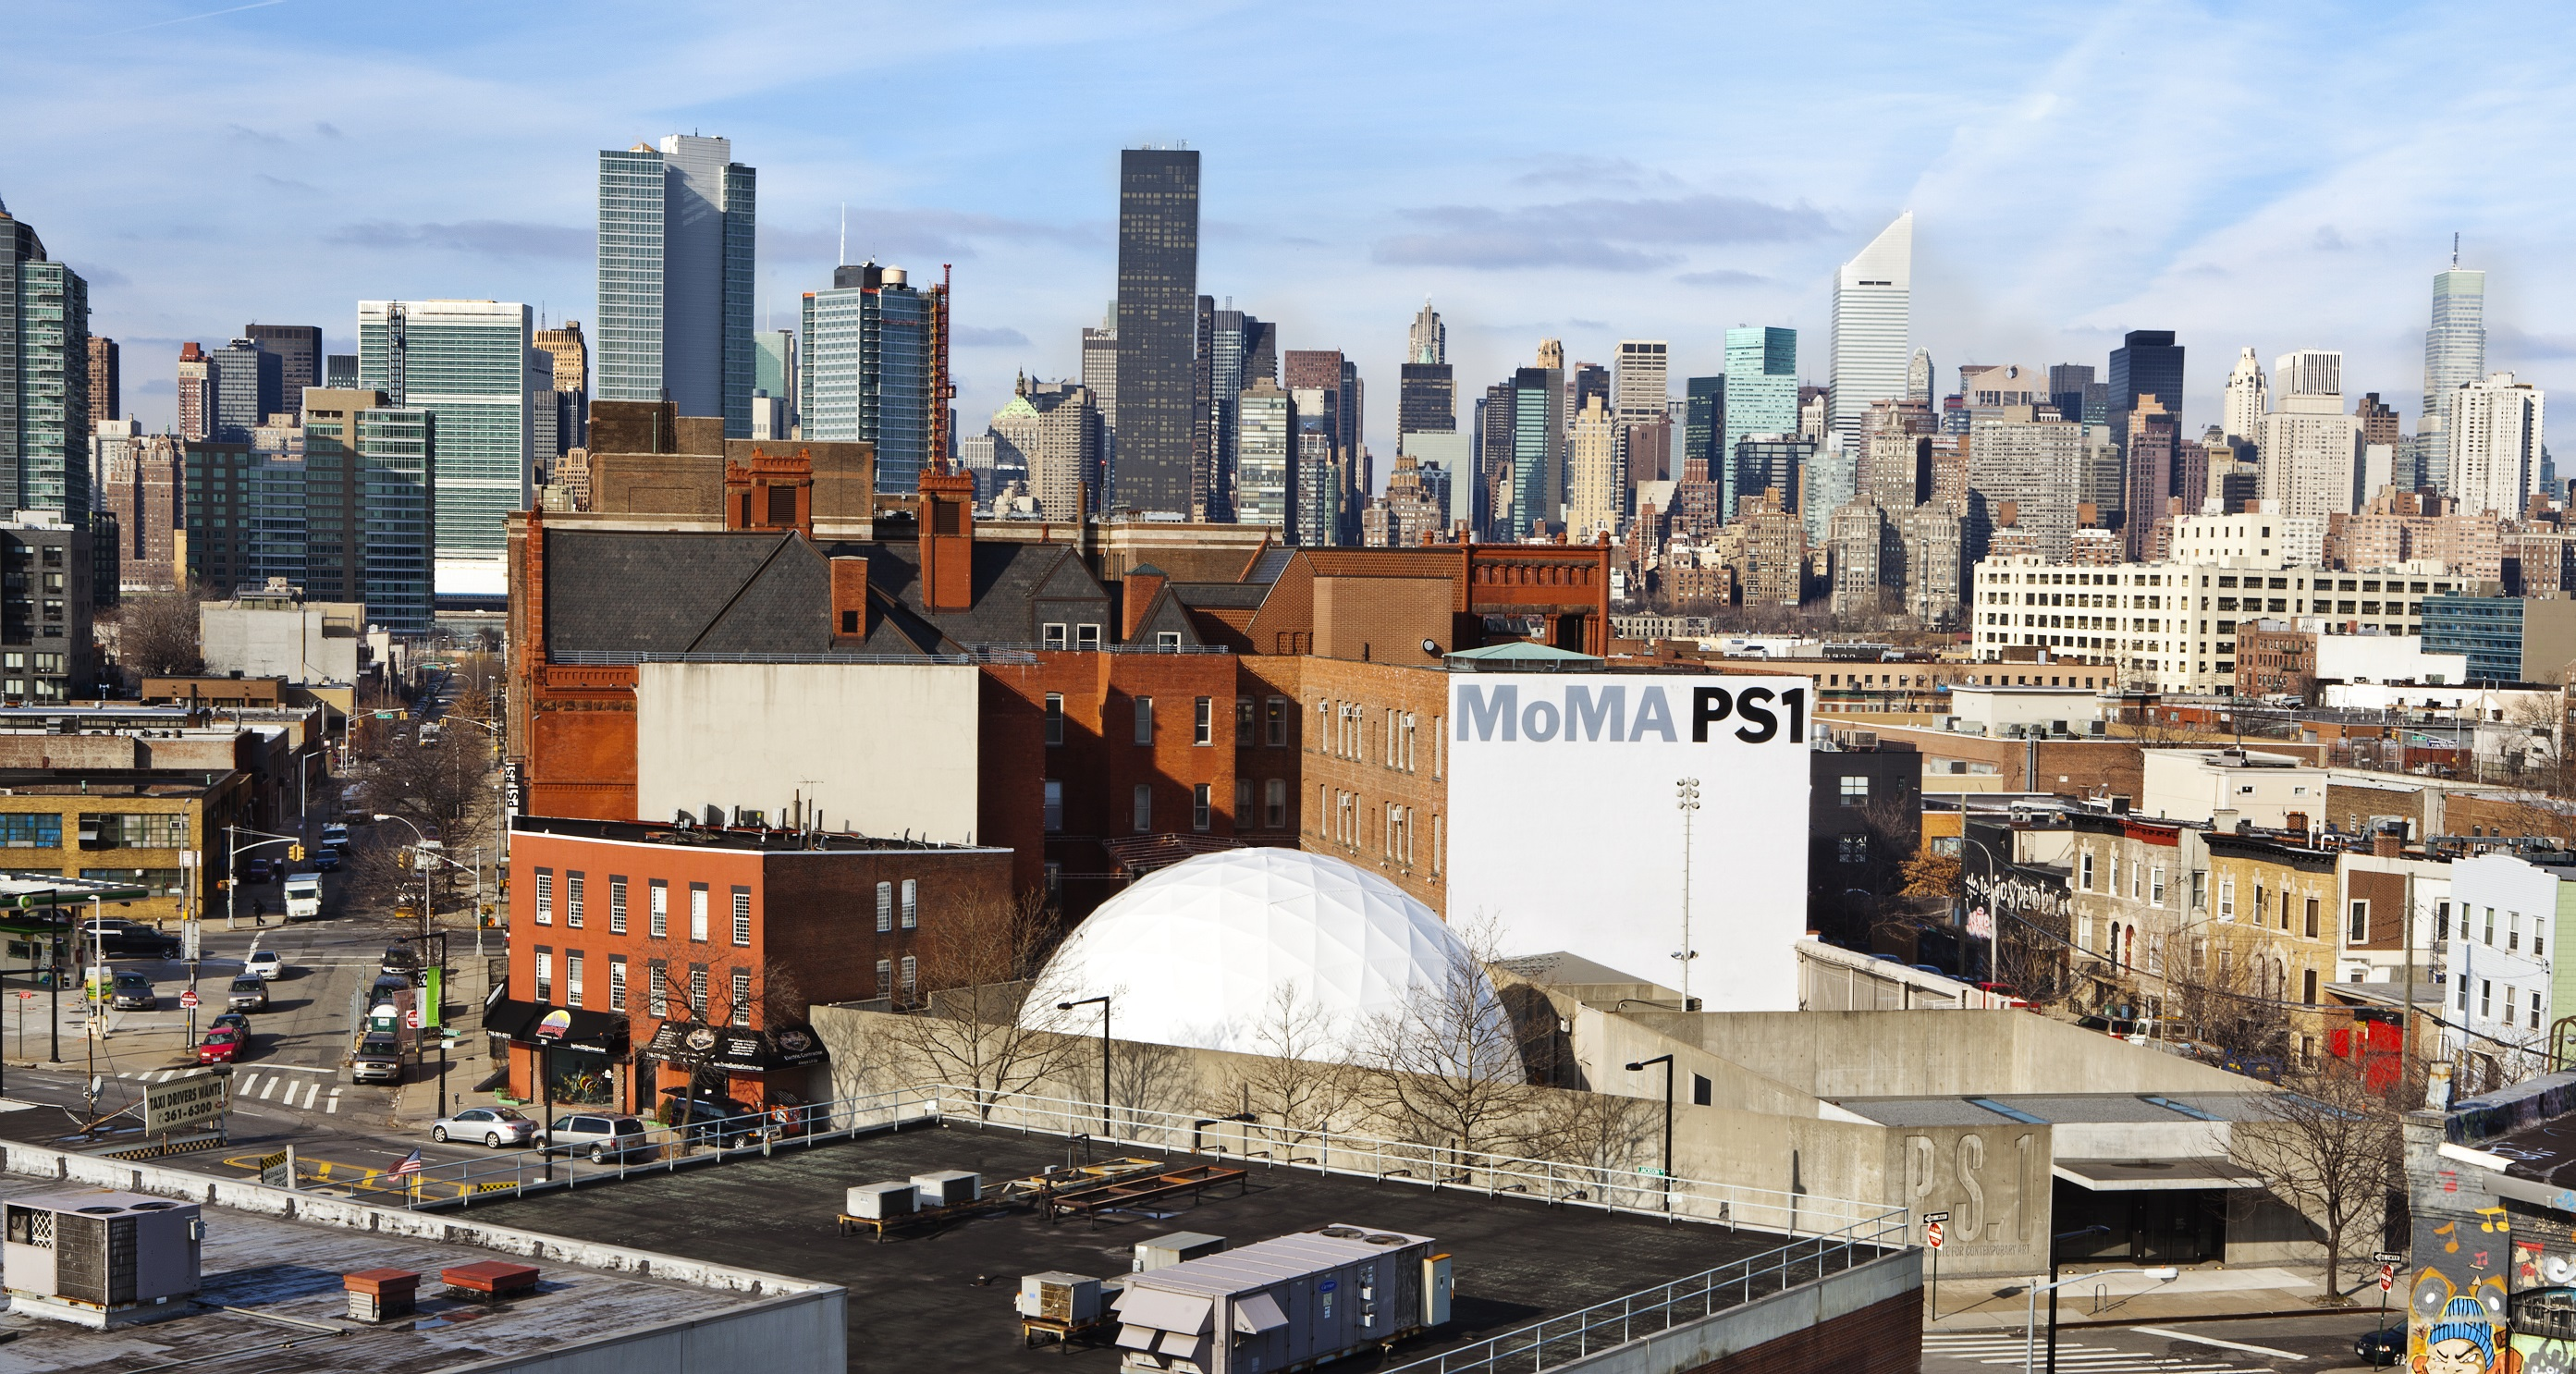 MoMA PS1 to offer free admission to NYC residents for one year